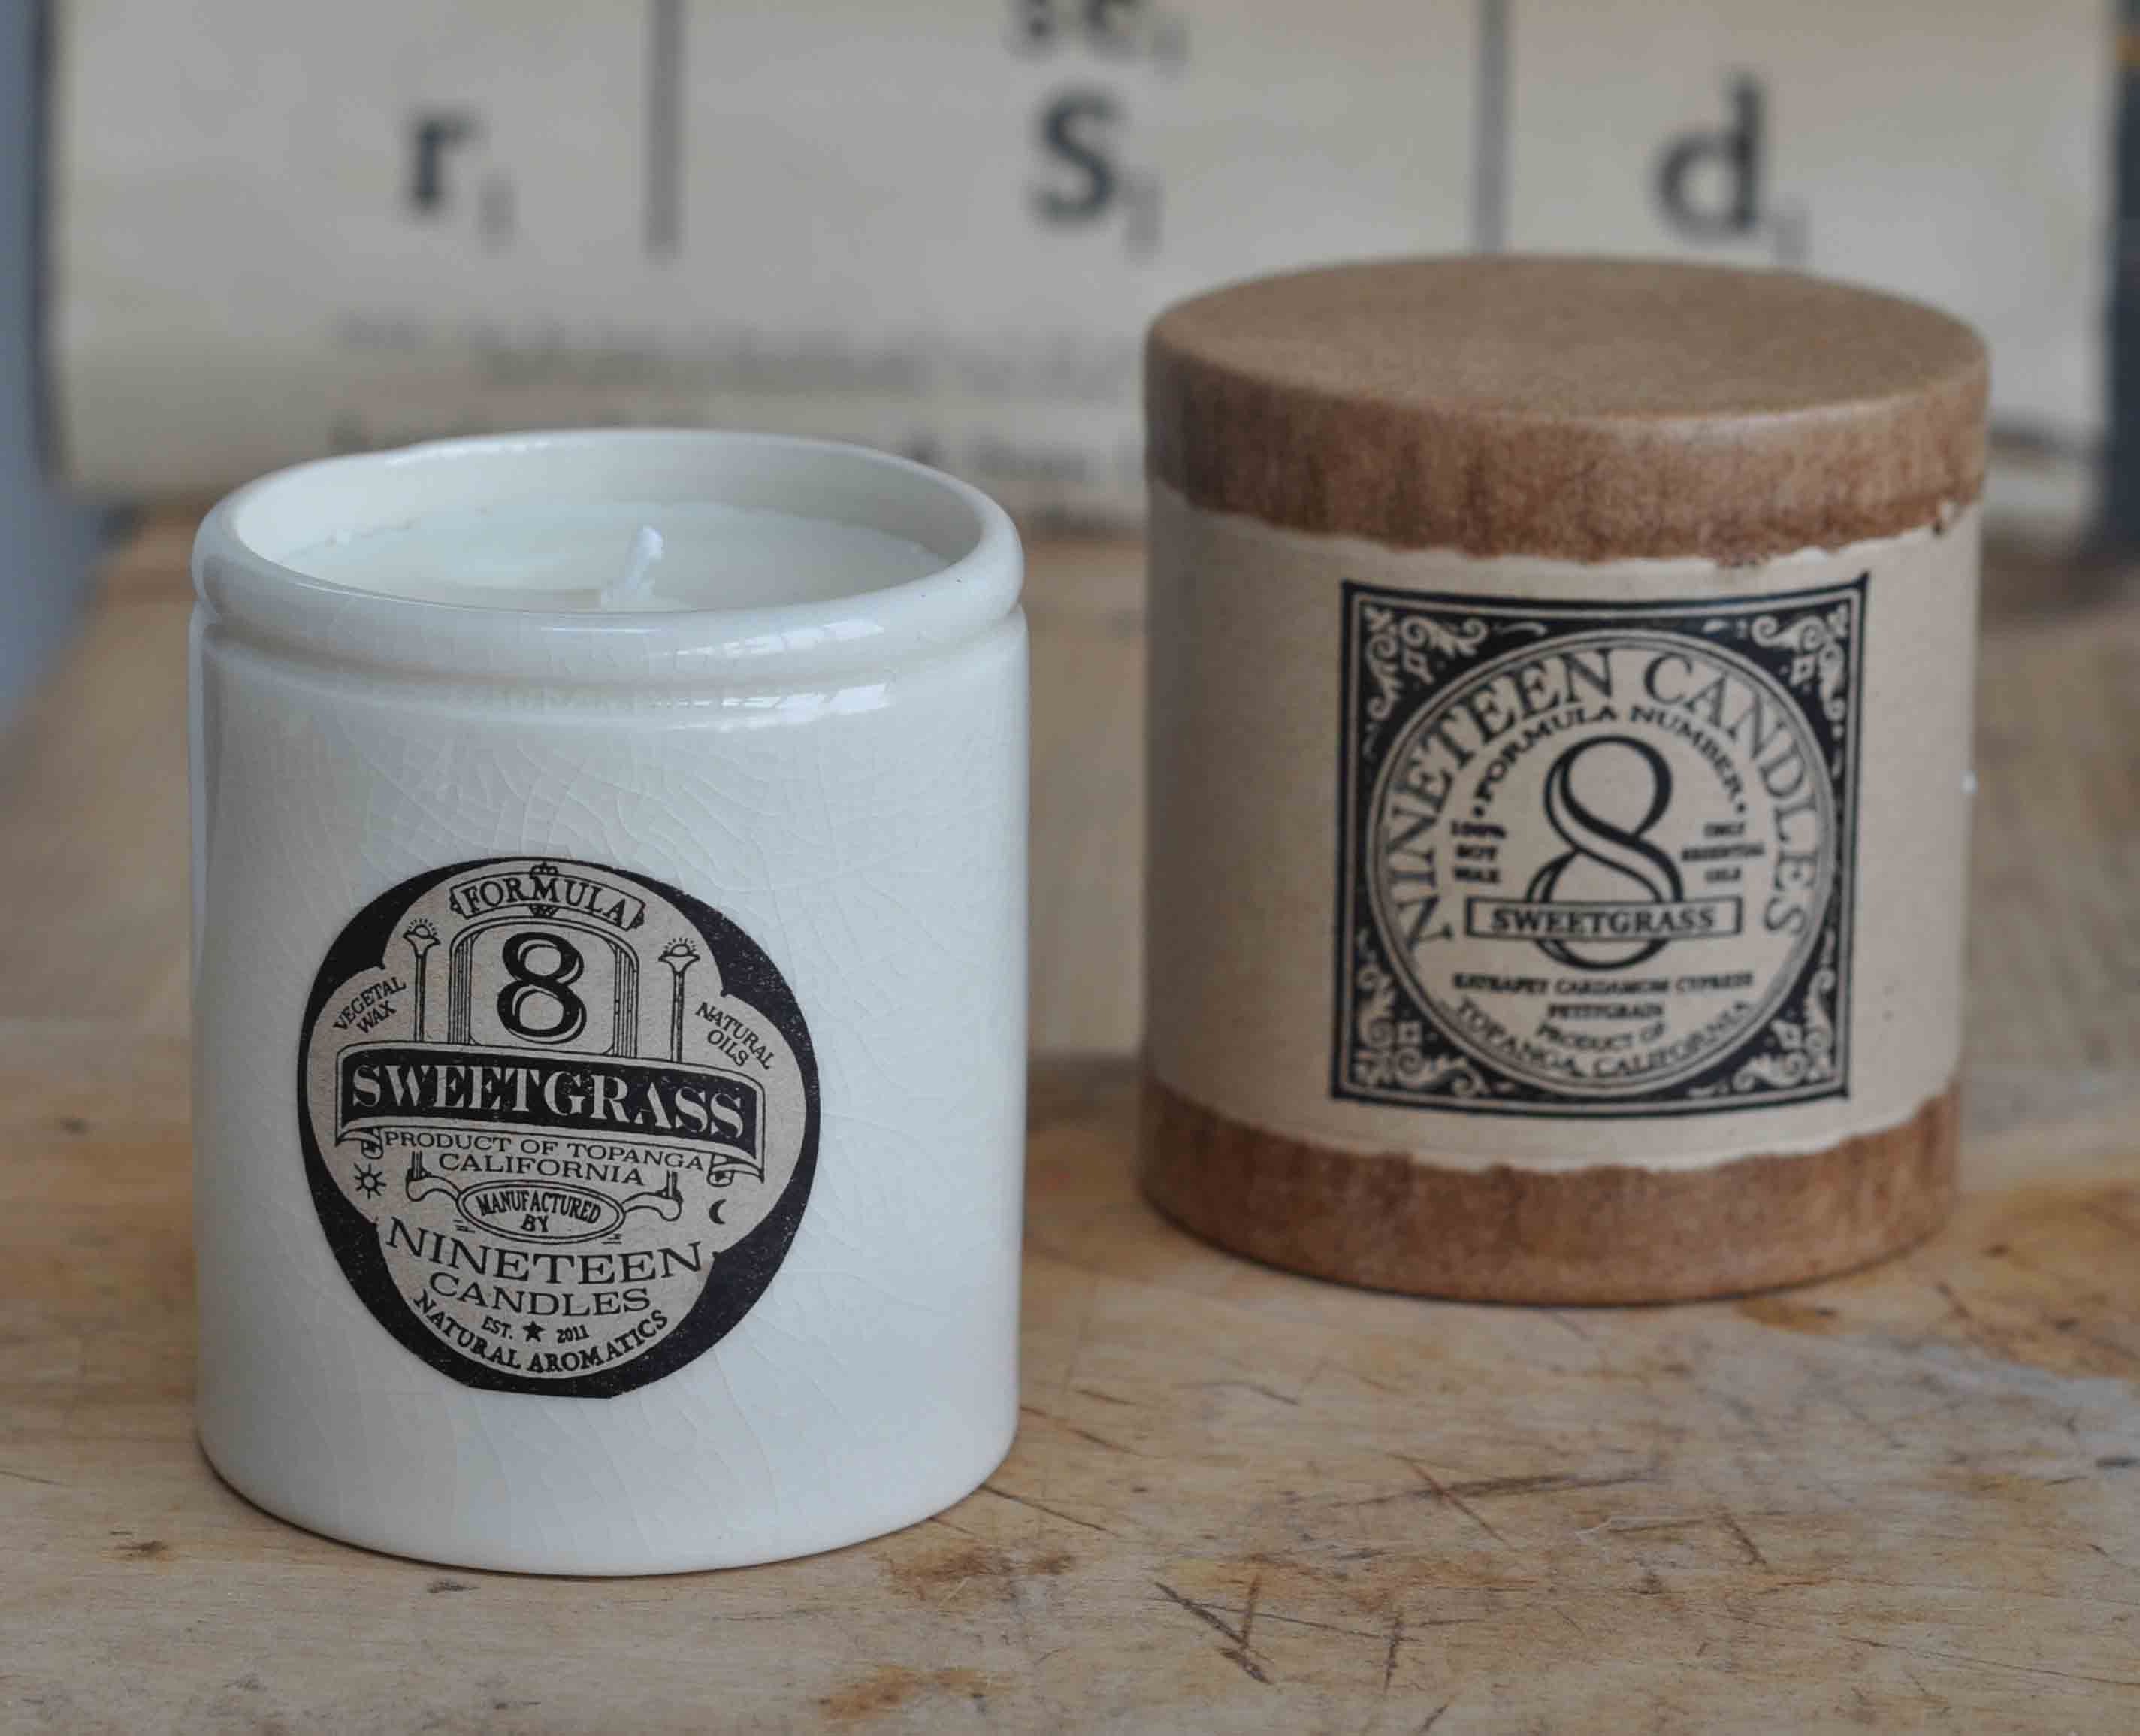 Handmade Nineteen Candle No 8 Sweetgrass